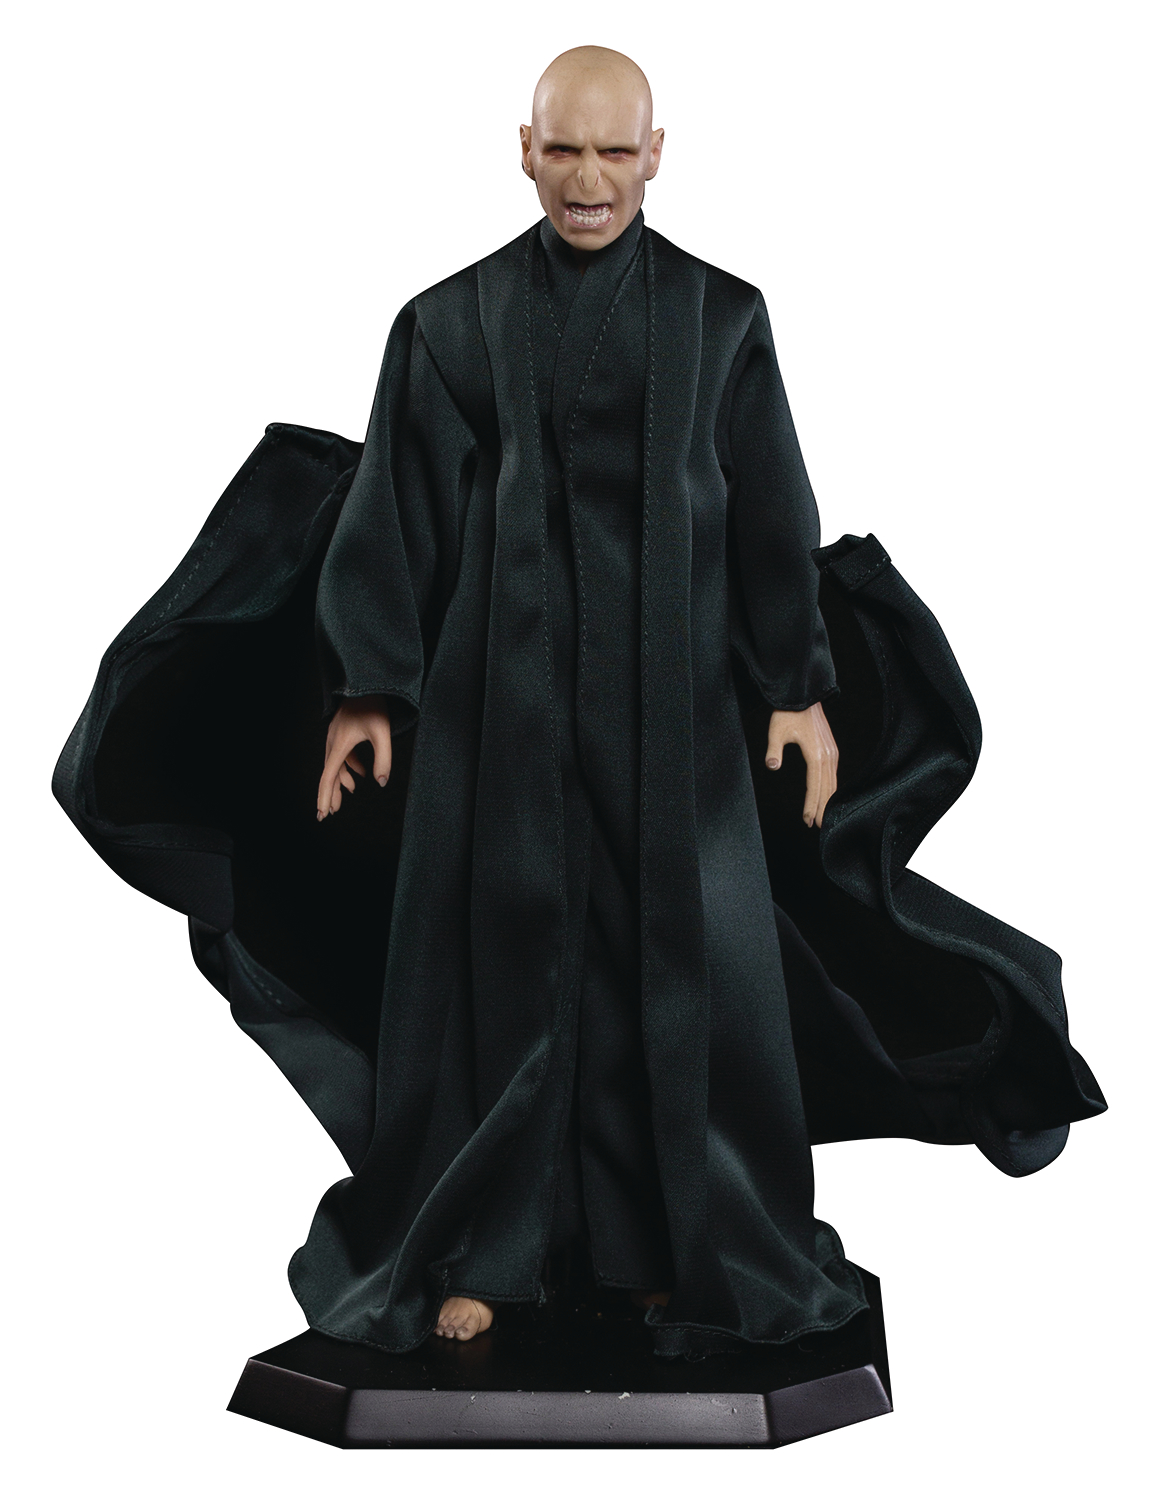 HP GOBLET OF FIRE LORD VOLDEMORT 1/8 AF